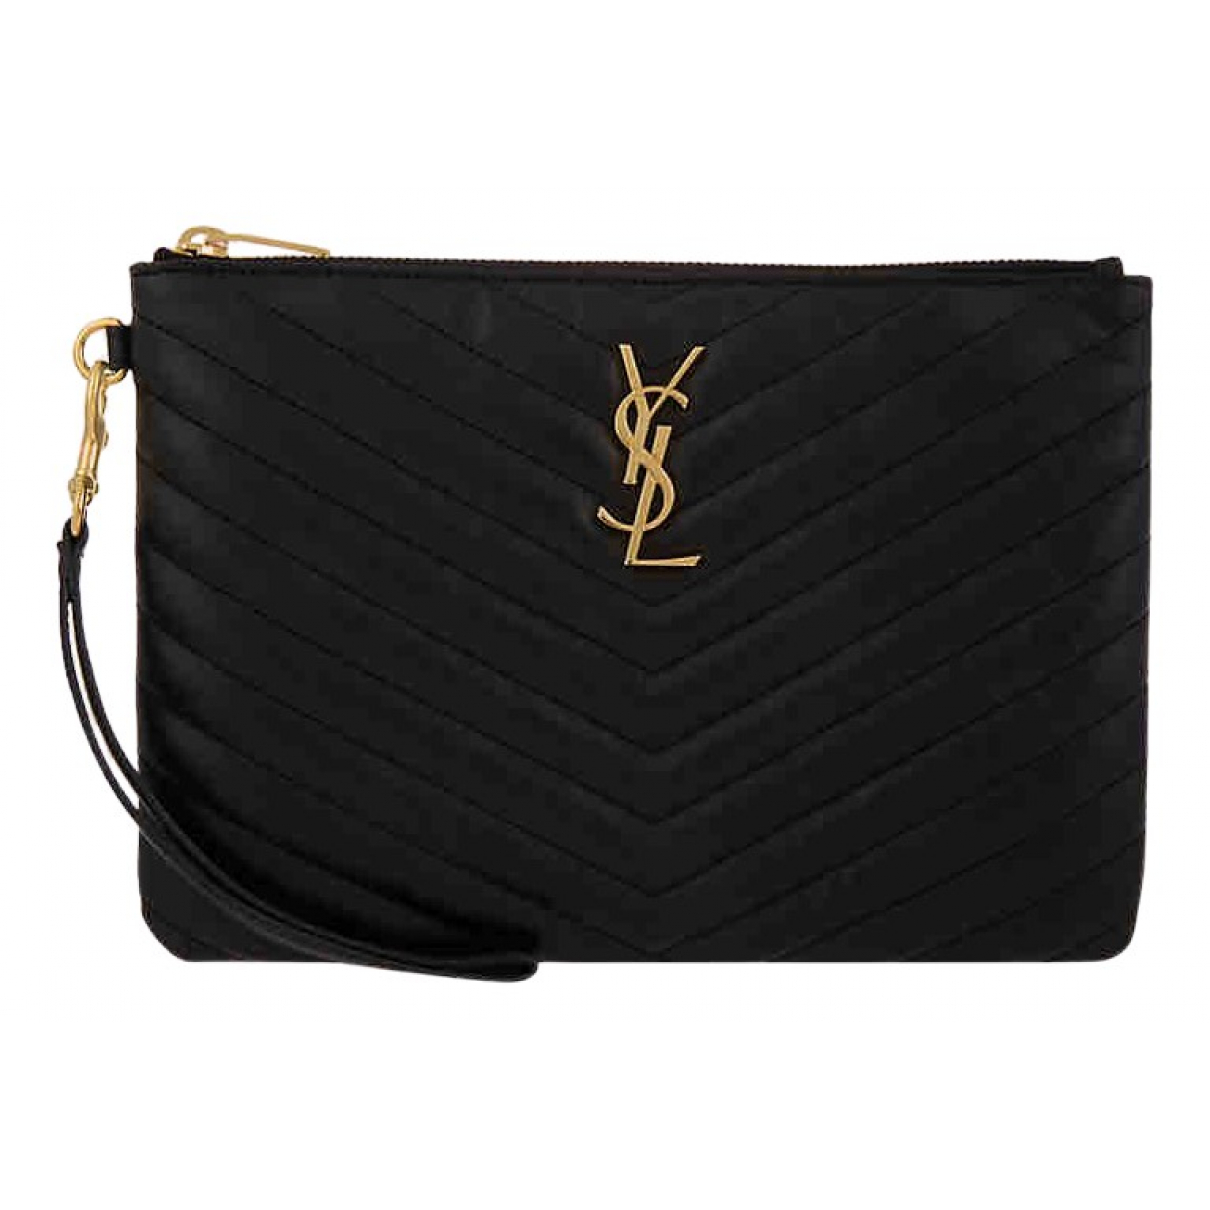 Saint Laurent New Jolie Black Leather Clutch bag for Women \N